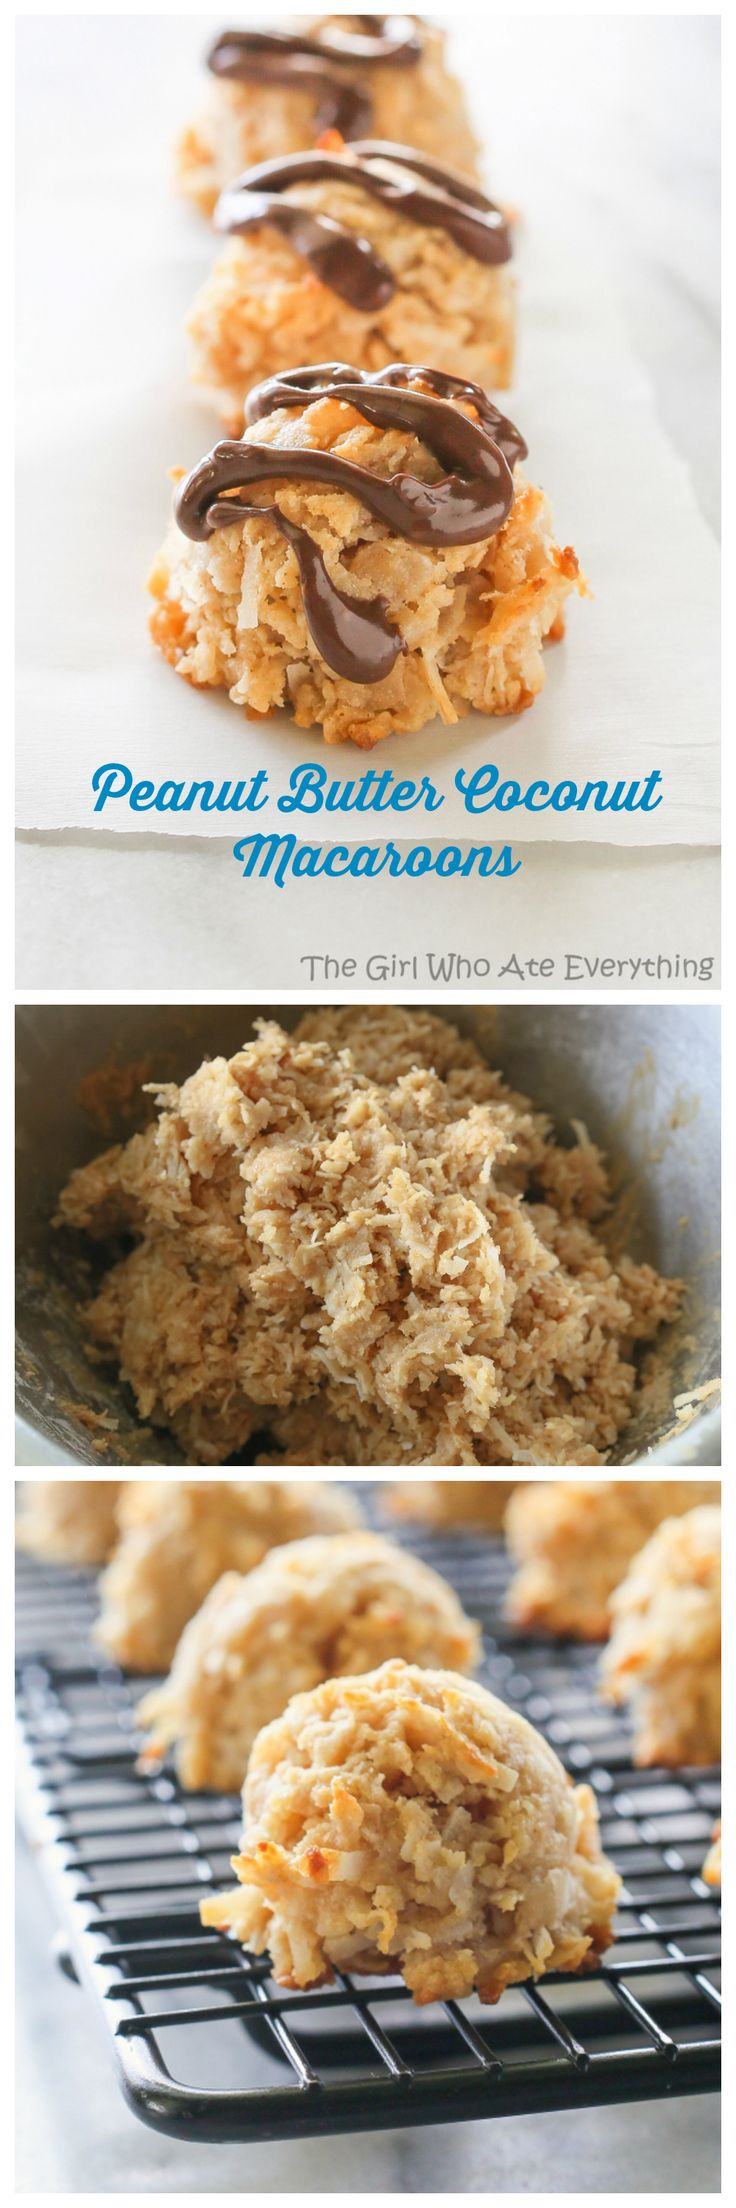 Peanut Butter Coconut Macaroons - The Girl Who Ate Everything